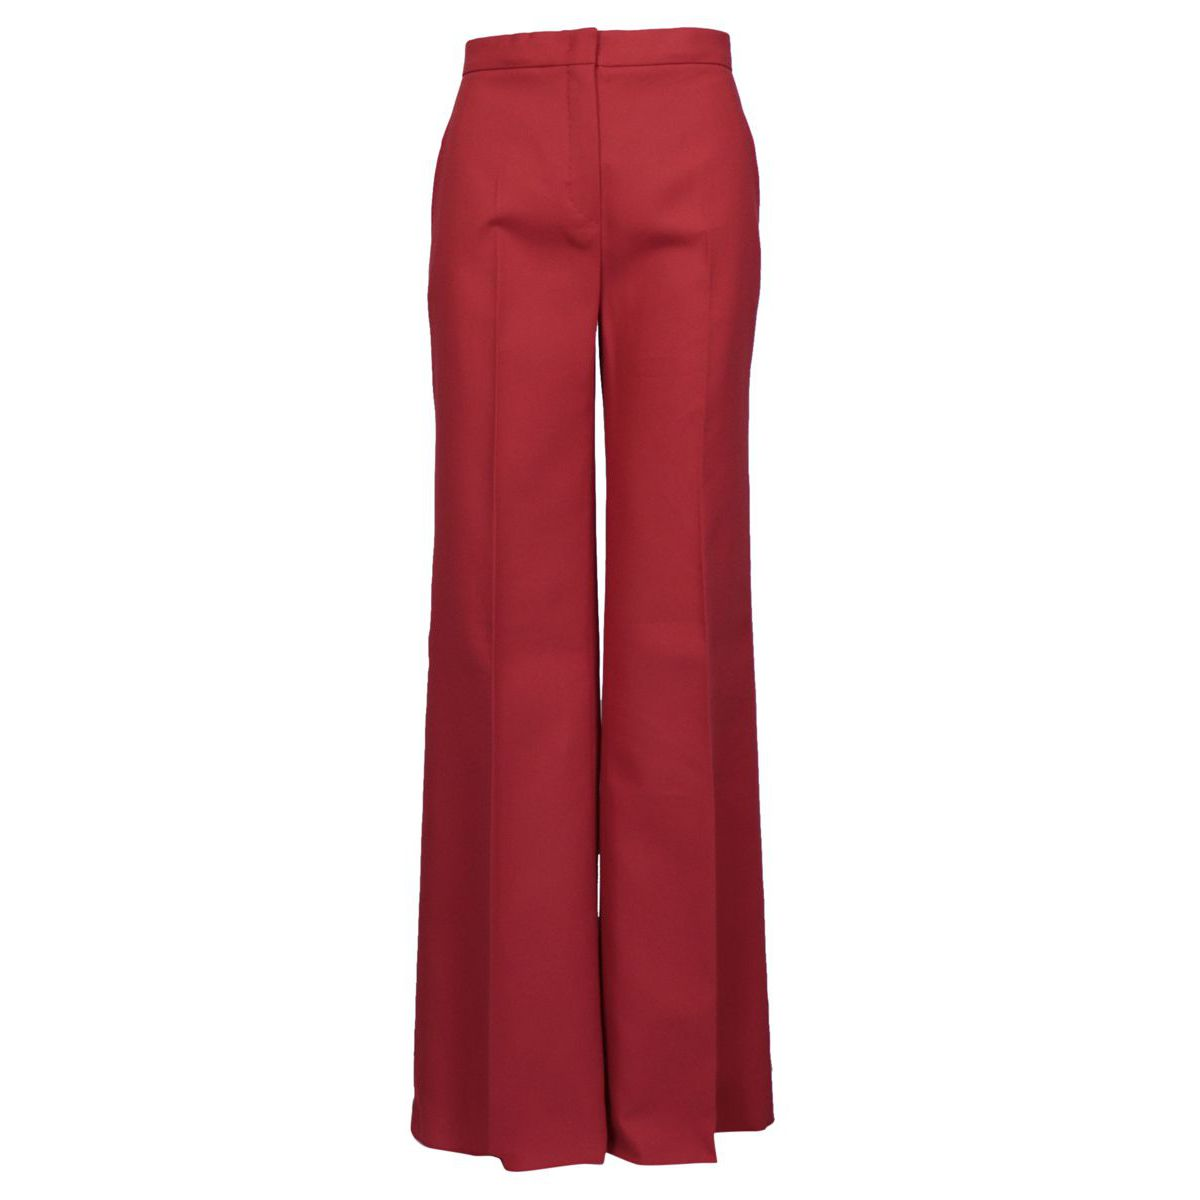 Wide cotton trousers with ironed crease and diagonal pockets India red MAX MARA STUDIO